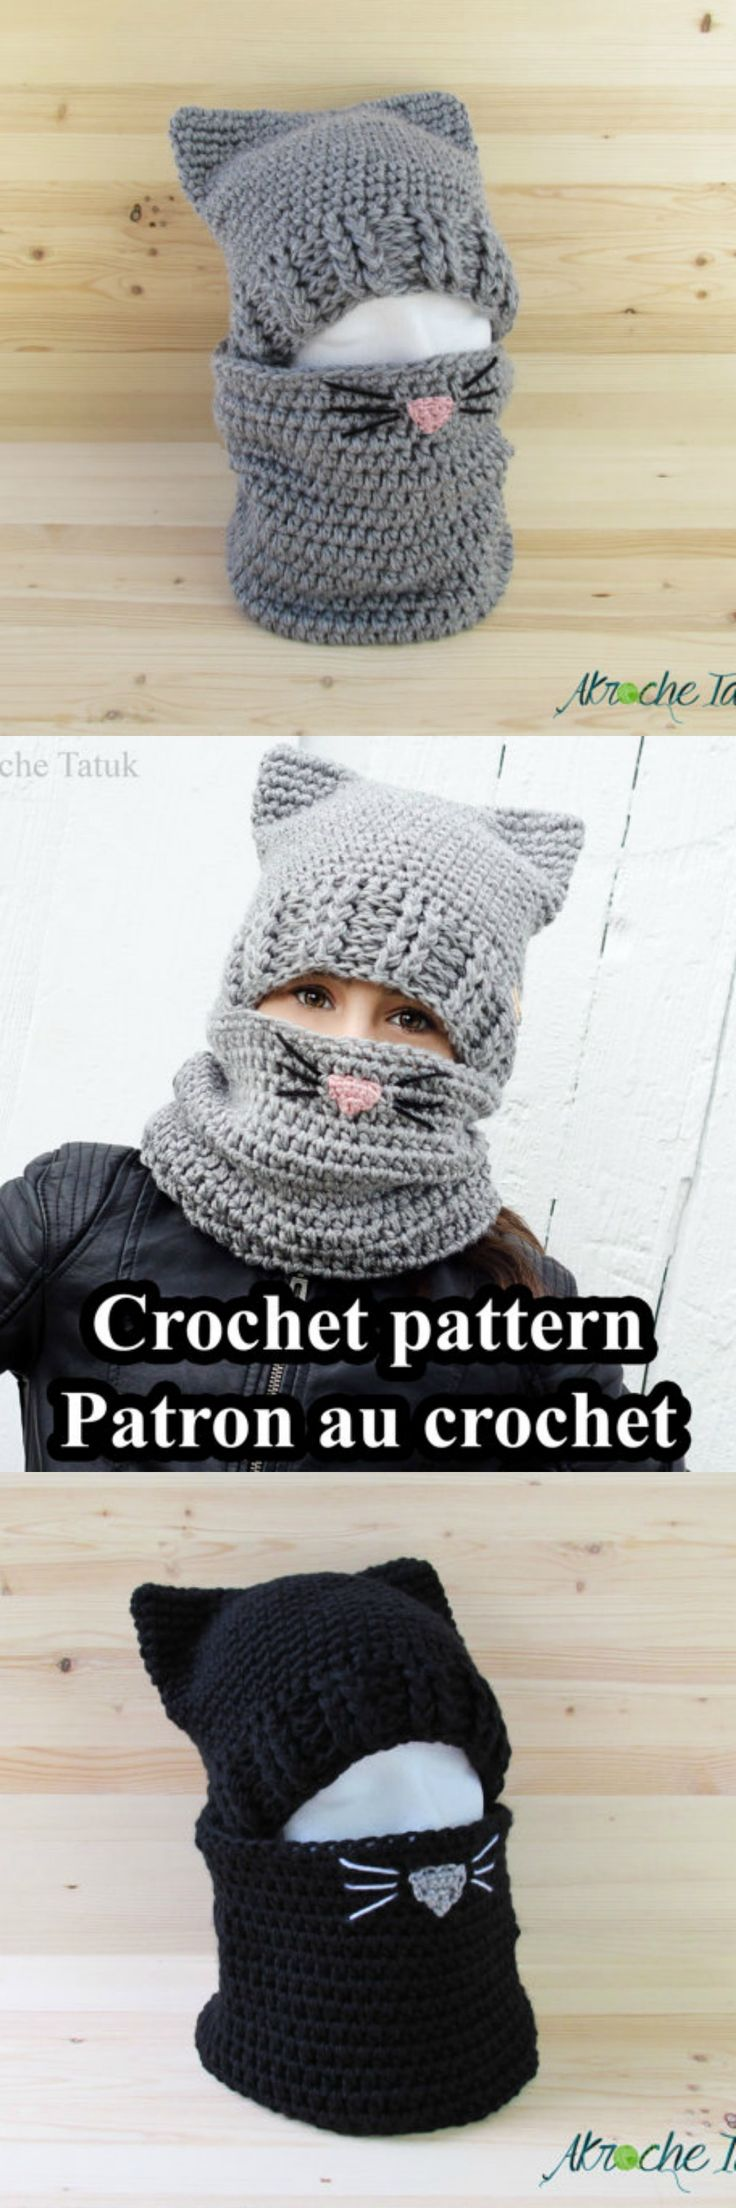 Cat hat crochet pattern. So cute and warm!